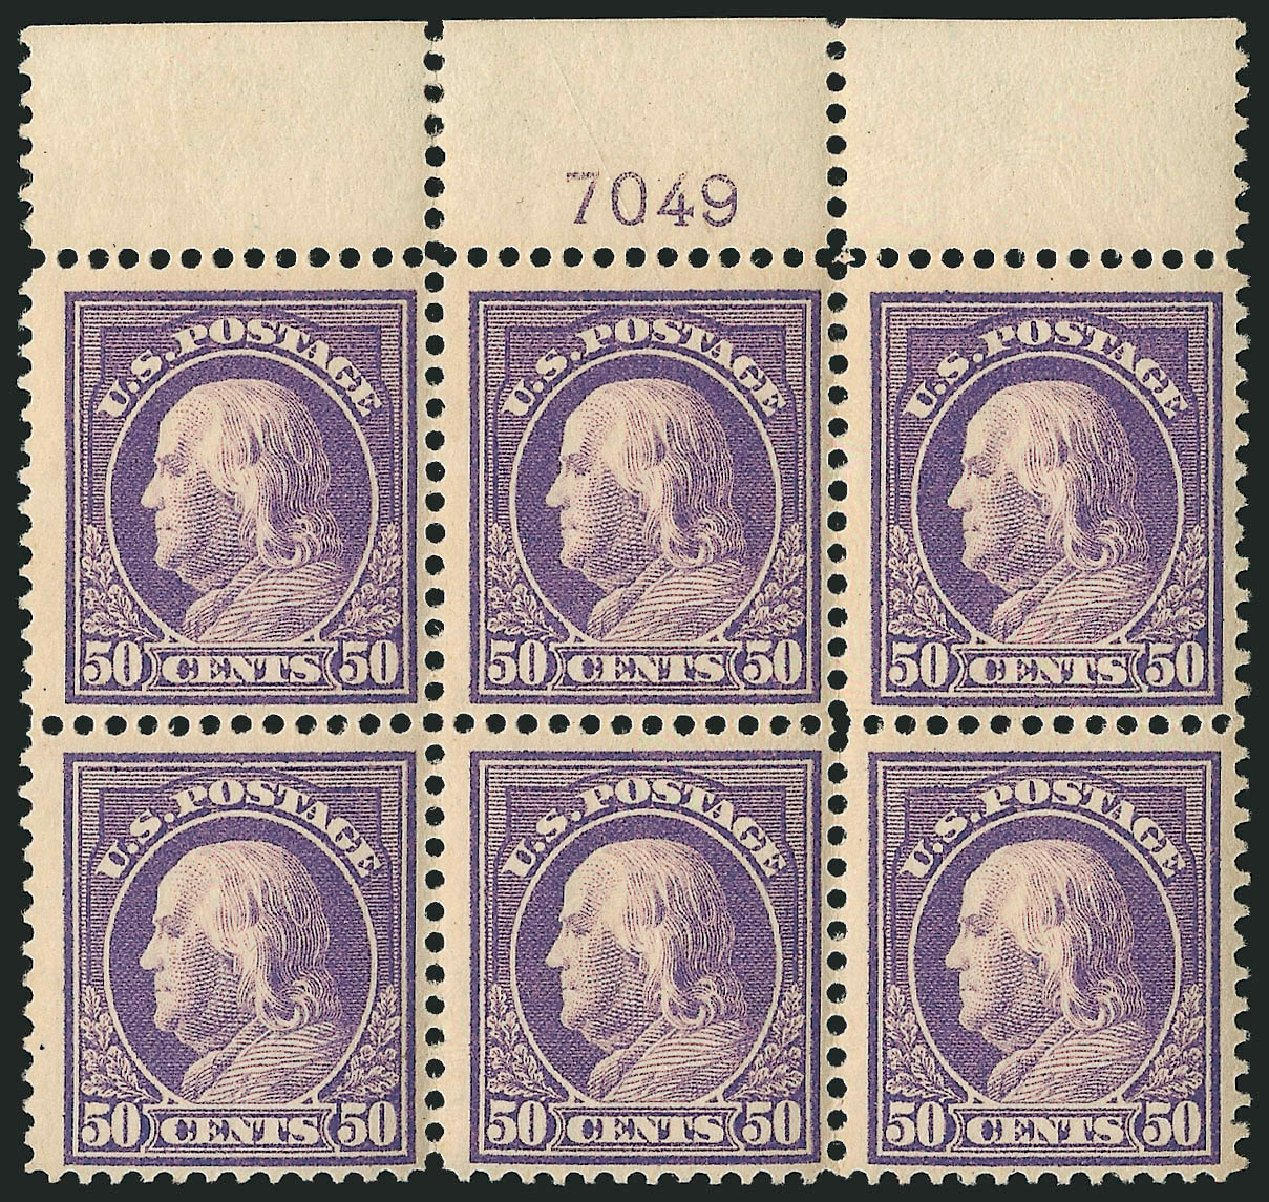 US Stamp Value Scott 421 - 1914 50c Franklin Perf 12. Robert Siegel Auction Galleries, Apr 2015, Sale 1096, Lot 670